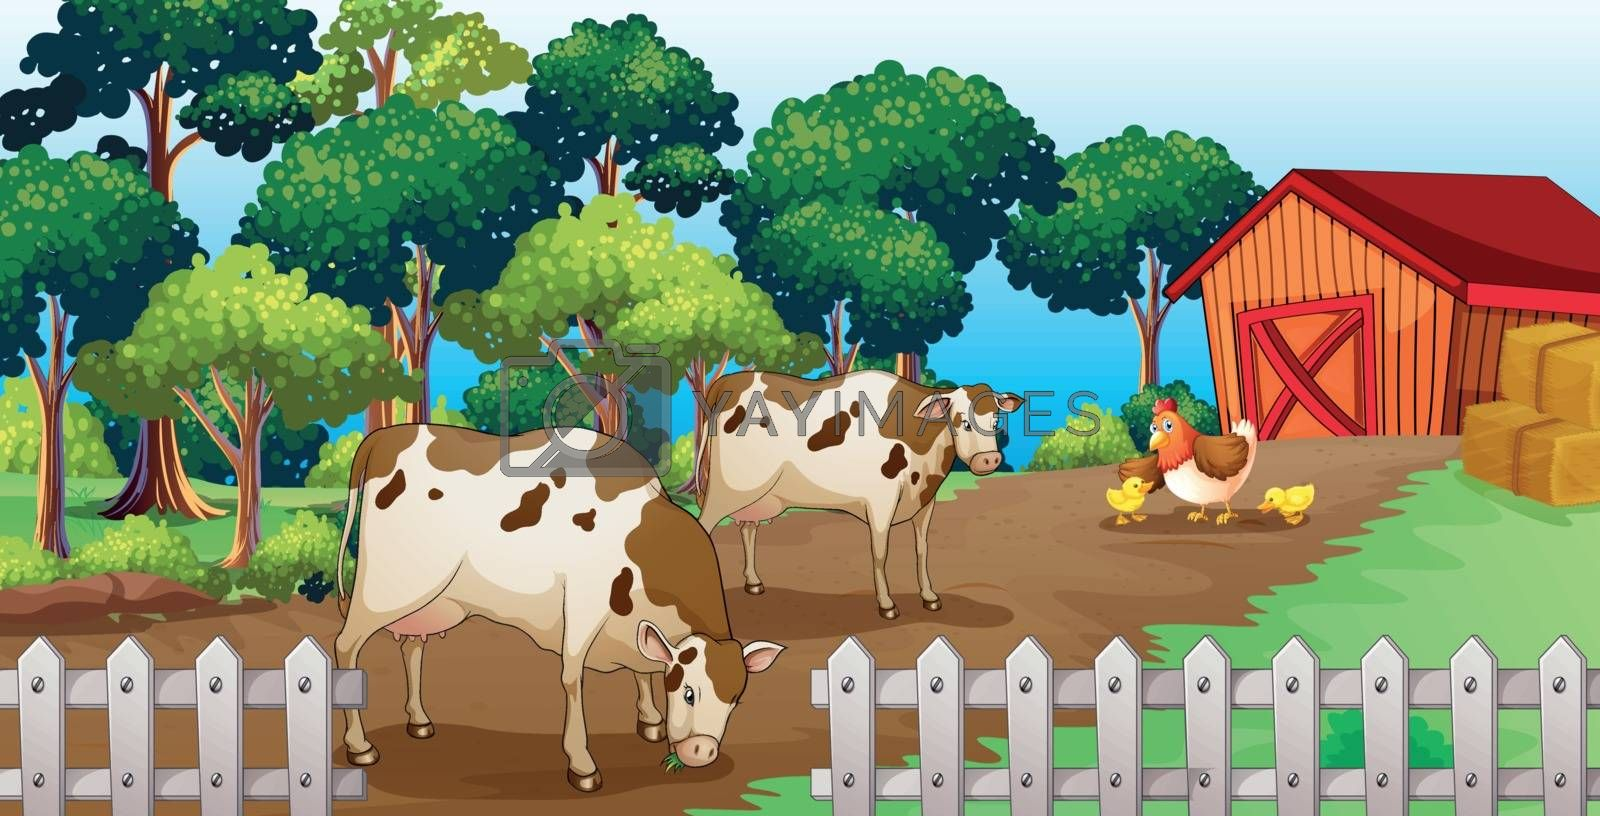 Illustration of a farm with animals inside the fence